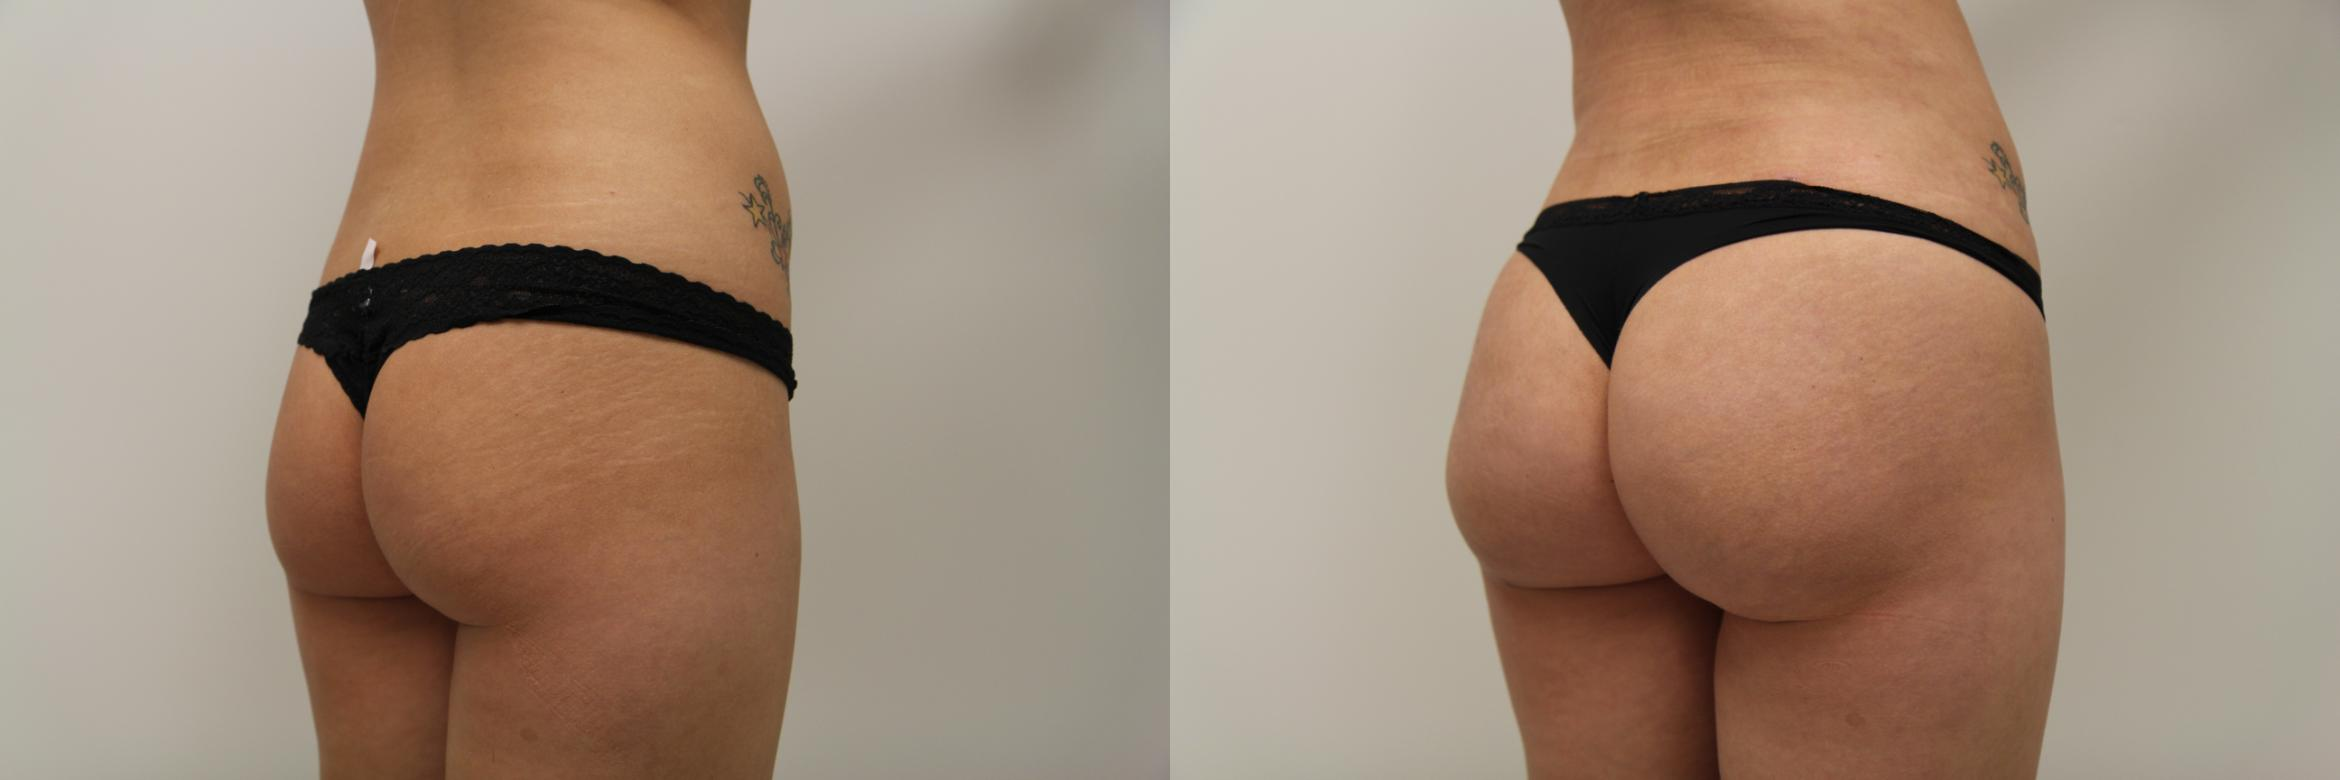 Liposuction Case 87 Before & After View #2 | Gilbert, AZ | Dr. Josh Olson: Advanced Plastic Surgery Institute